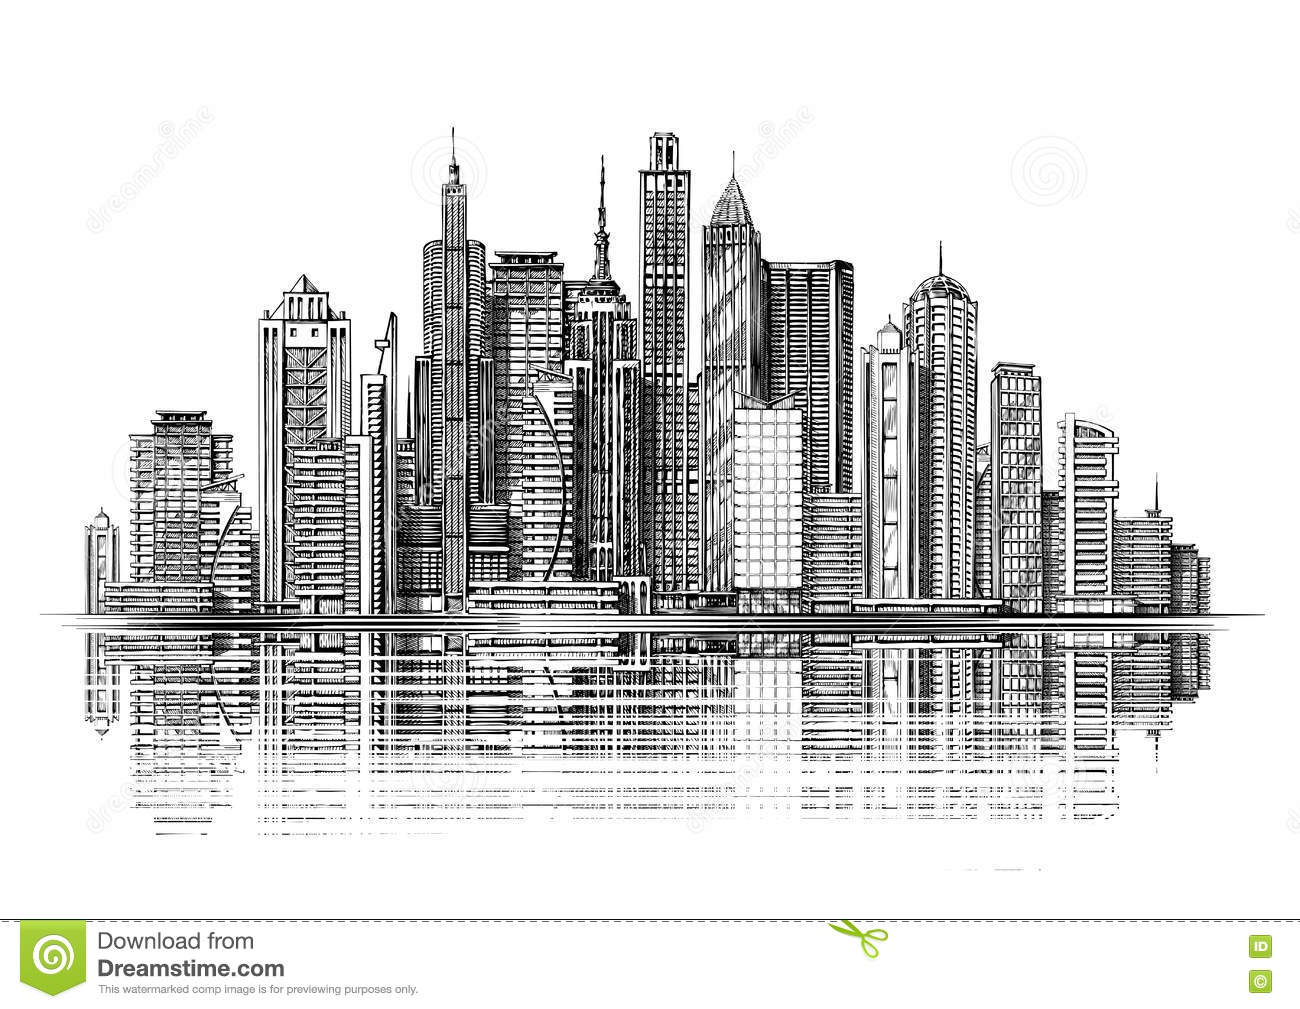 Architectural Drawings Of Skyscrapers Delighful City With From